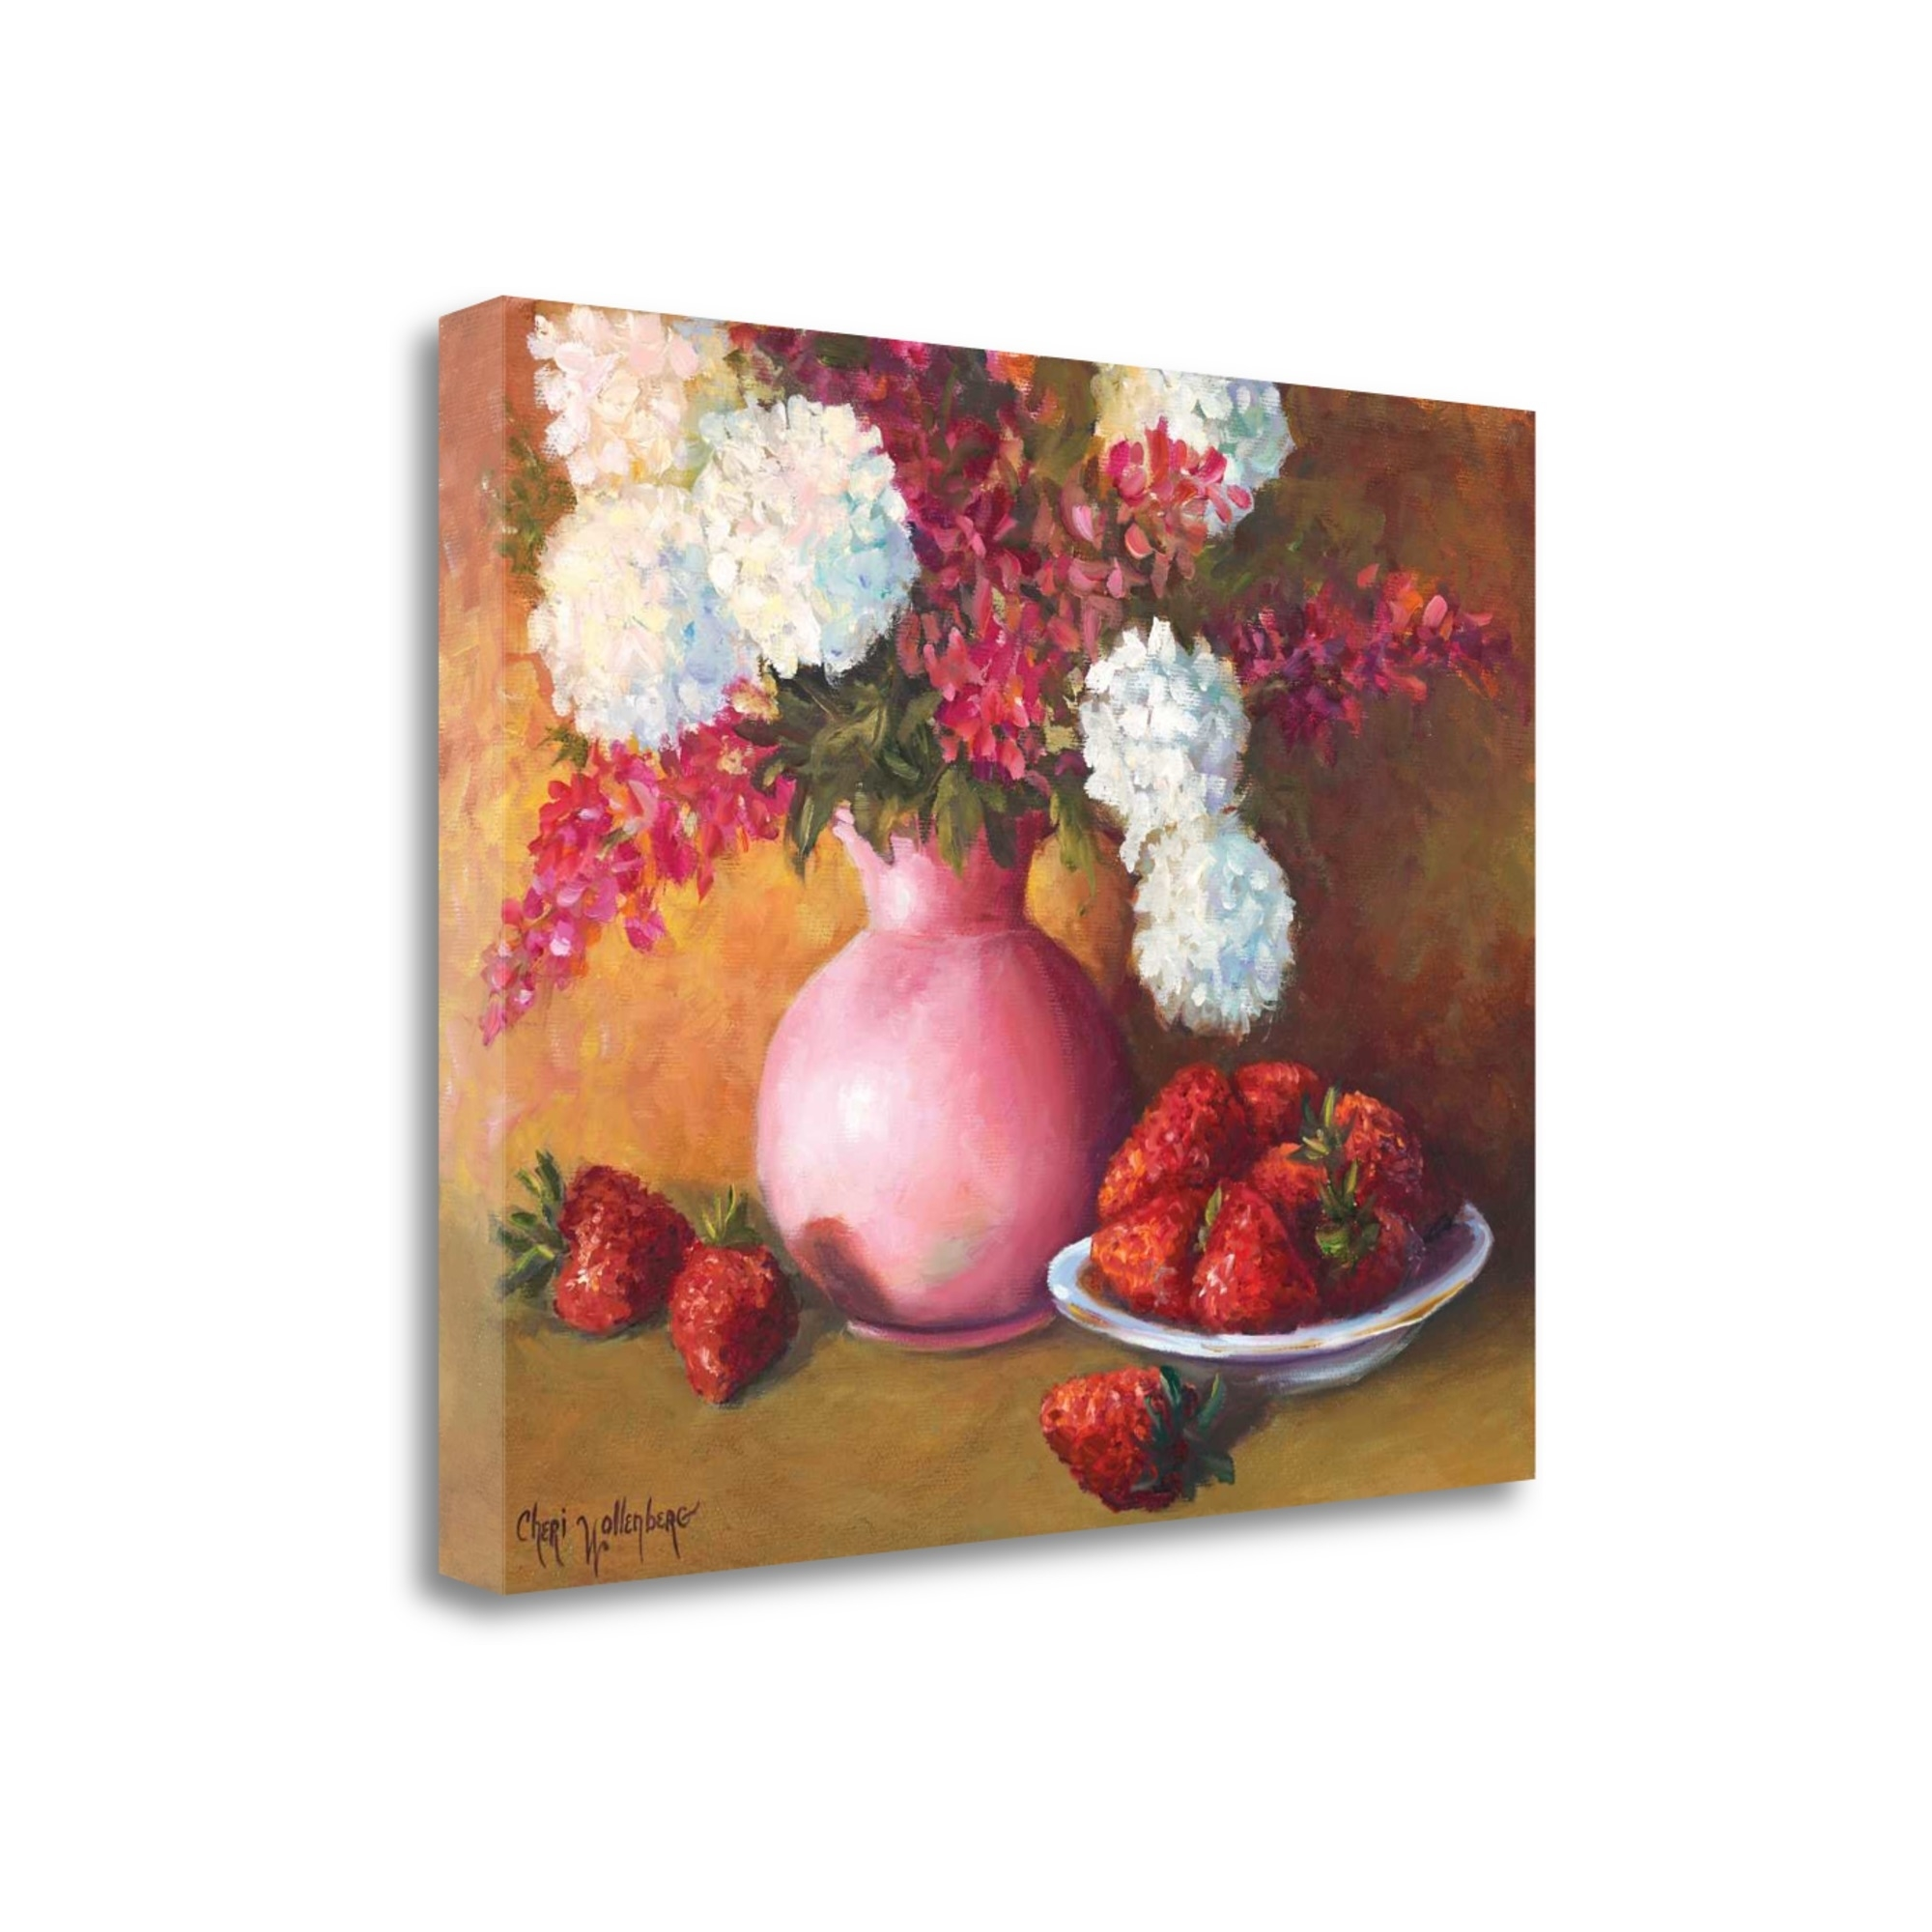 "Pink Vase And Strawberries By Cheri Wollenberg, 20"" x 16\"" Fine Art Giclee Print on Gallery Wrap Canvas, Ready to Hang"